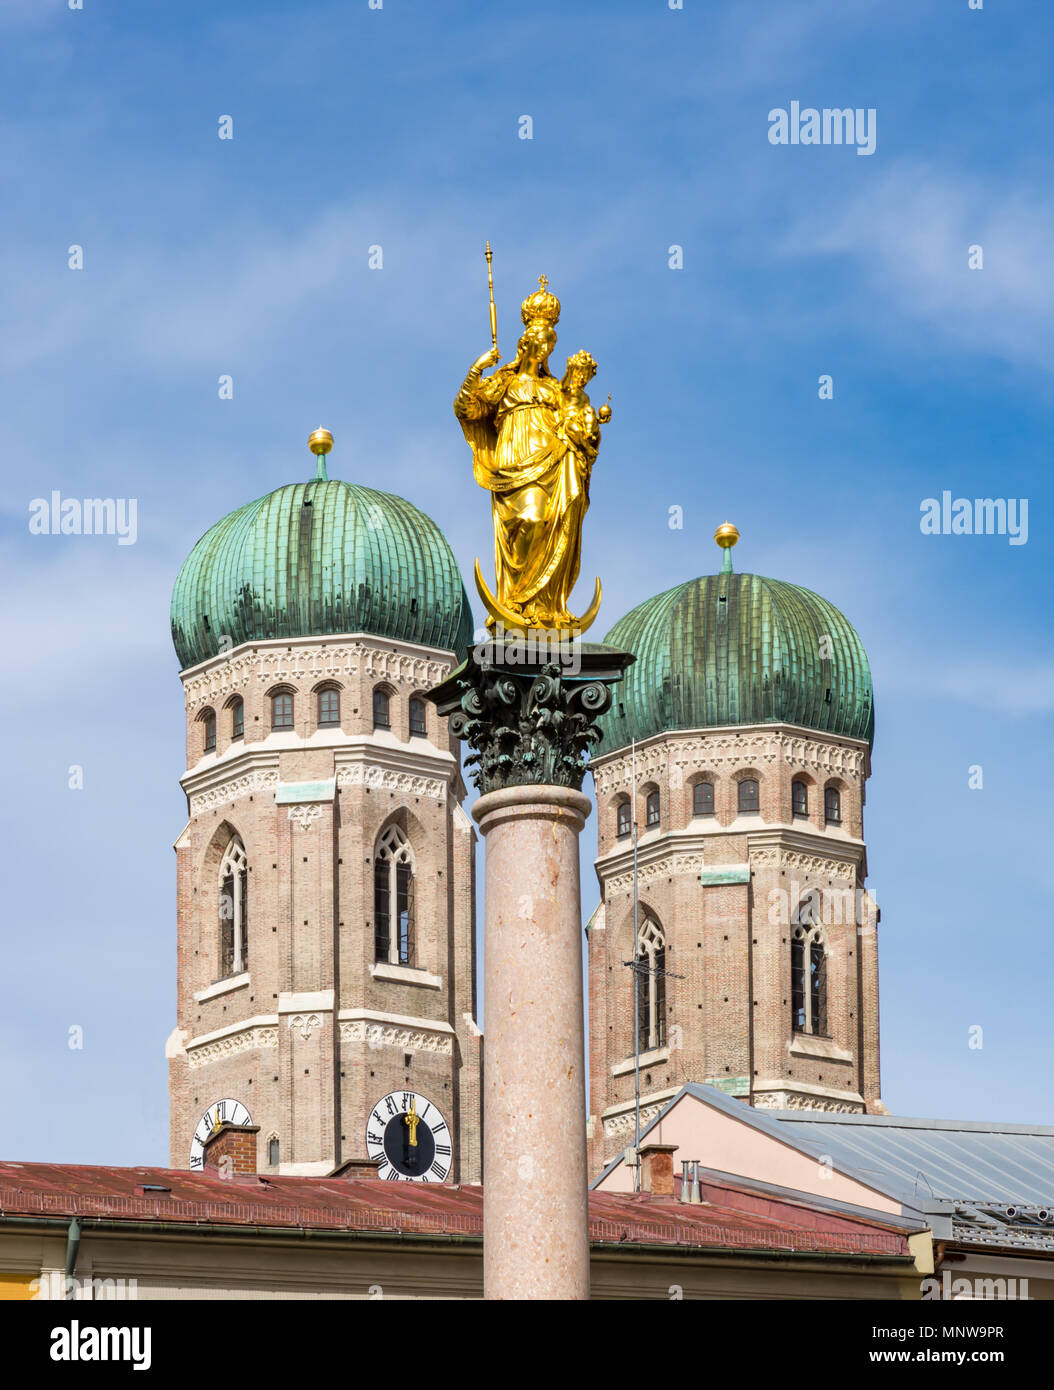 Colonne mariale et la cathédrale Frauenkirche de Munich Photo Stock